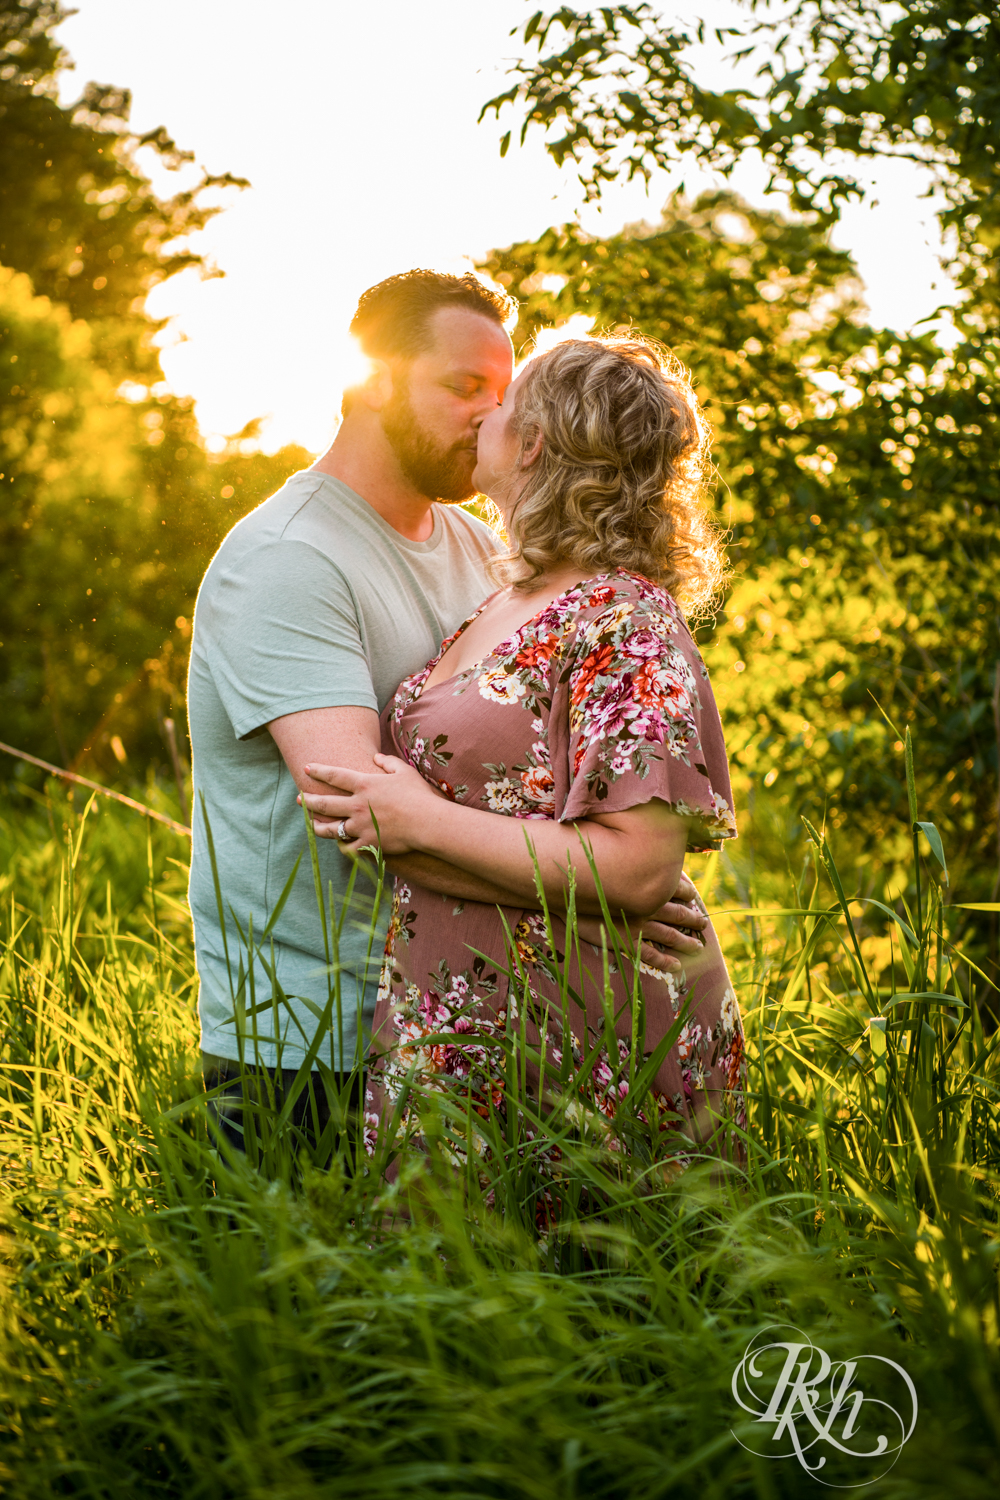 Constance & Josh - Minnesota Engagement Photography - Lebanon Hills Regional Park - RKH Images - Blog (13 of 18).jpg